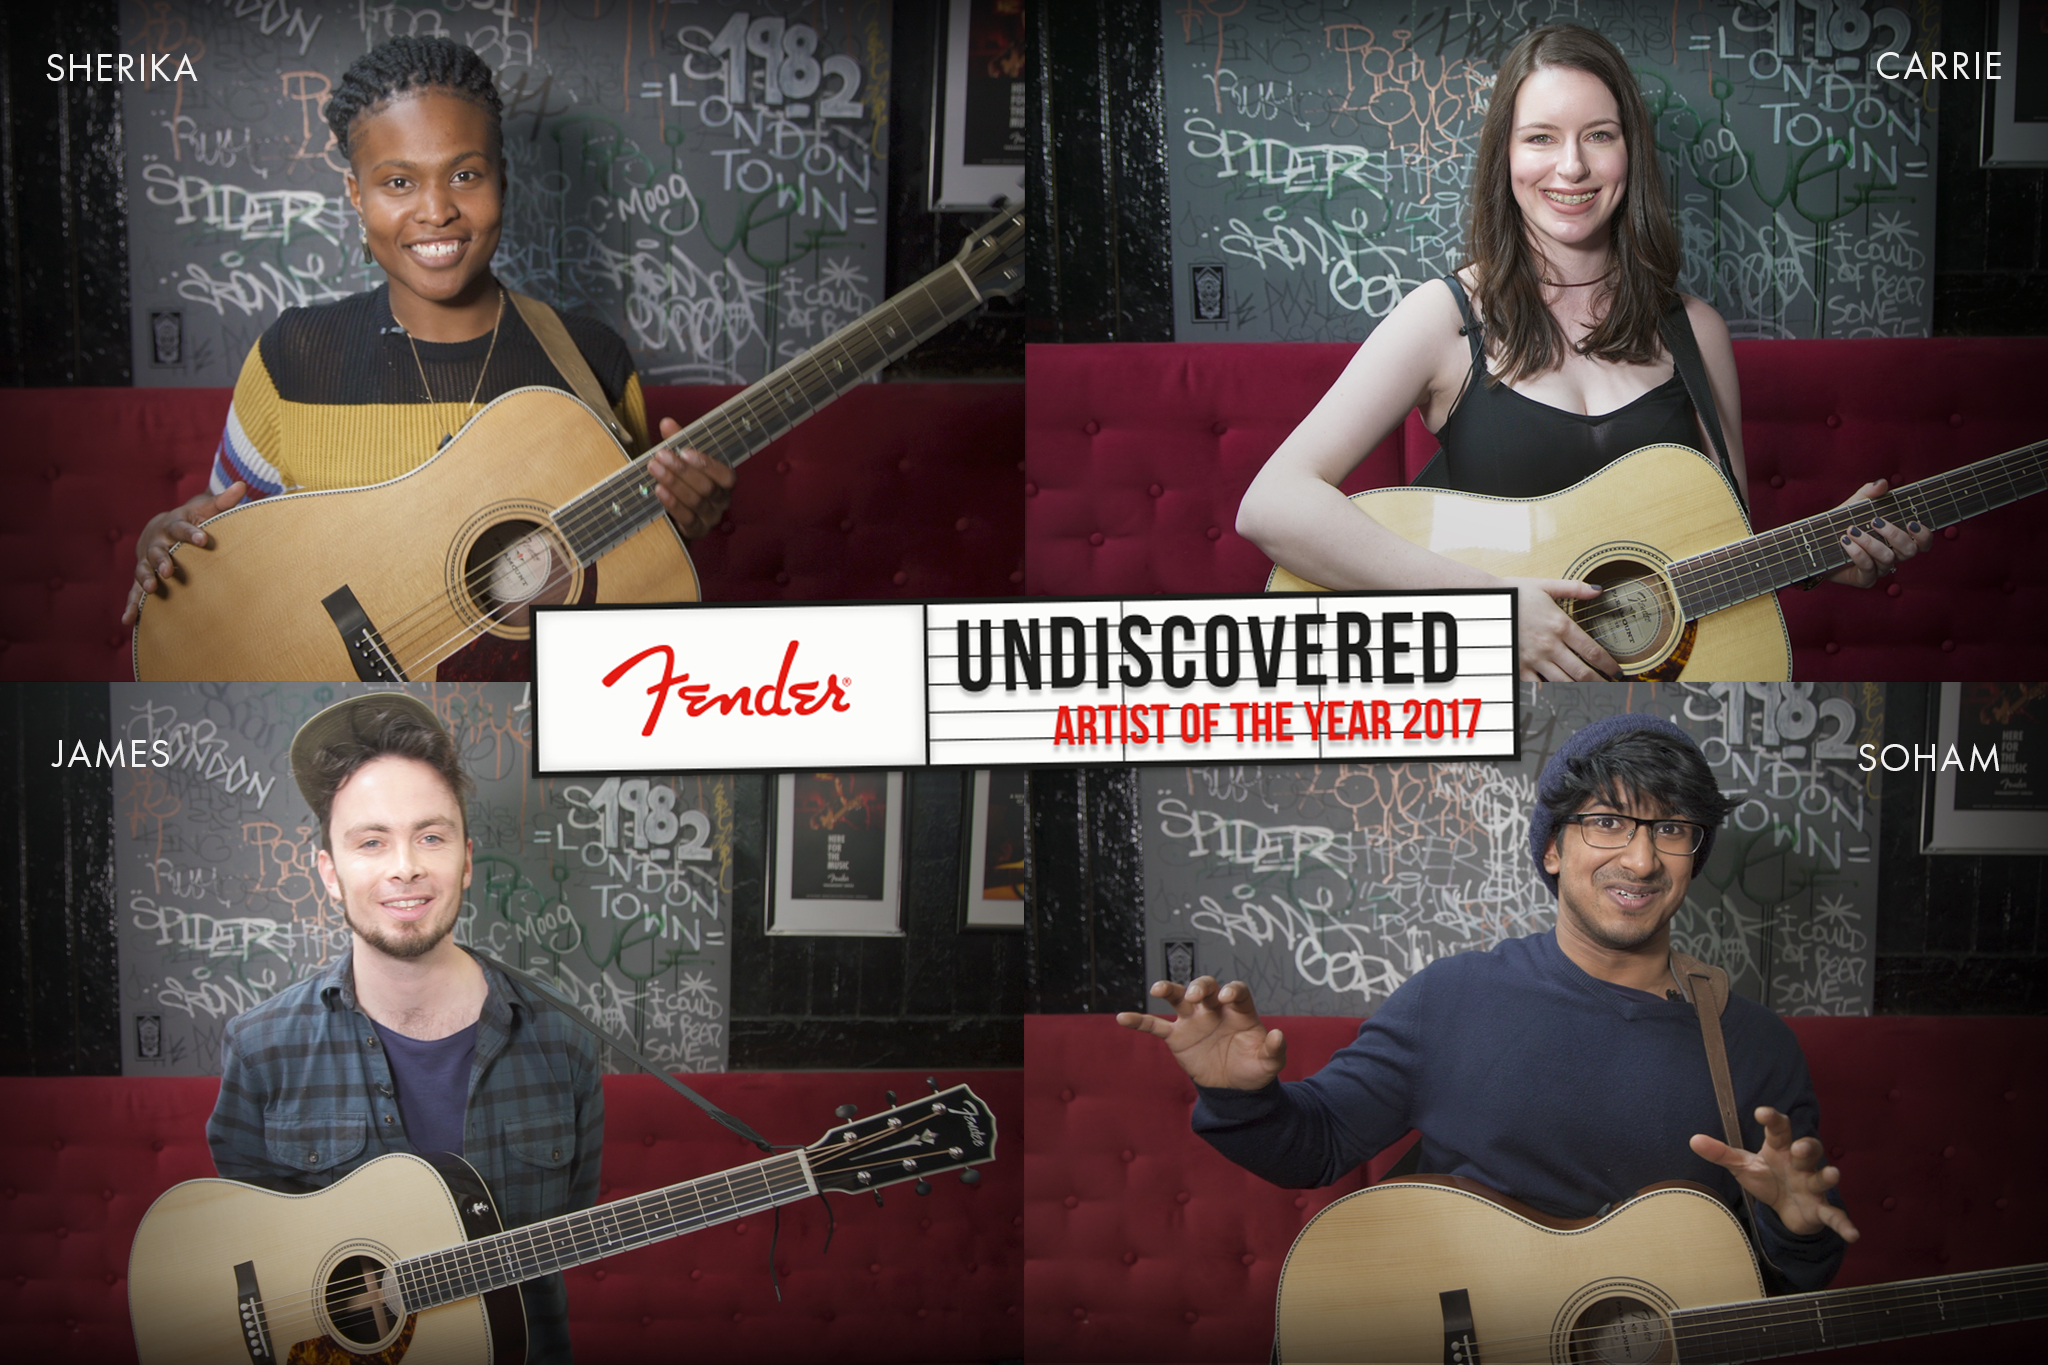 Meet the first four semi-finalists for Fender's Undiscovered Artist of the Year 2017